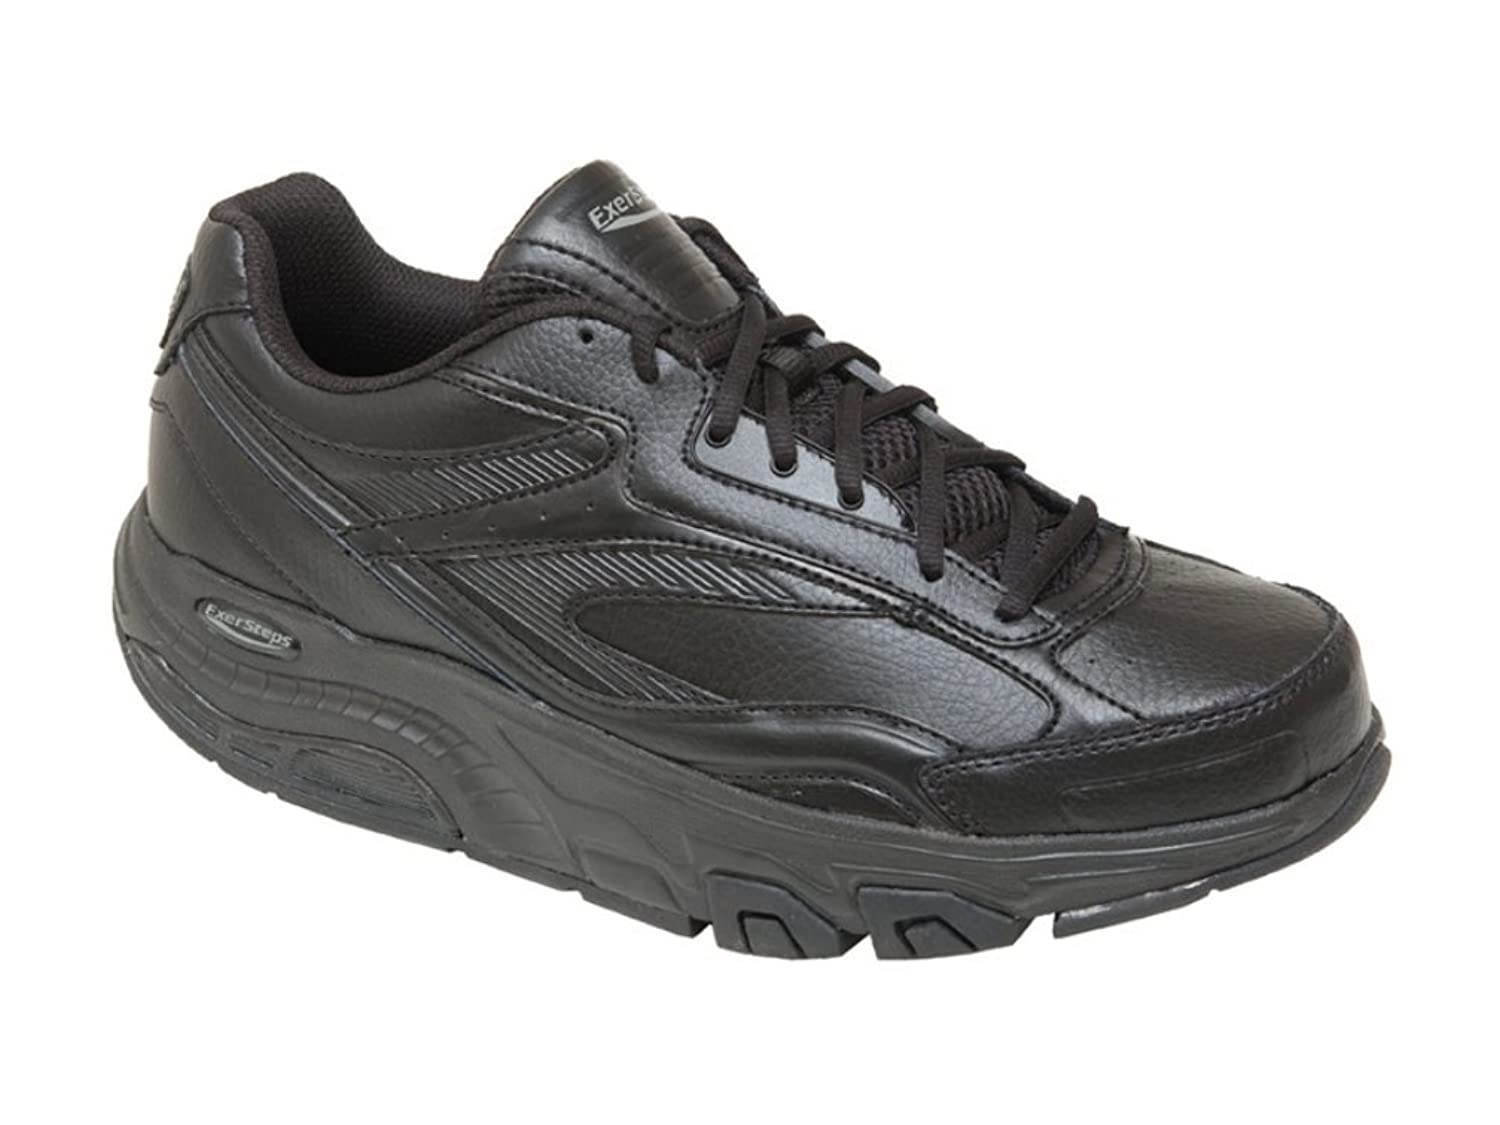 ExerSteps Men's Whirlwind Black Sneakers